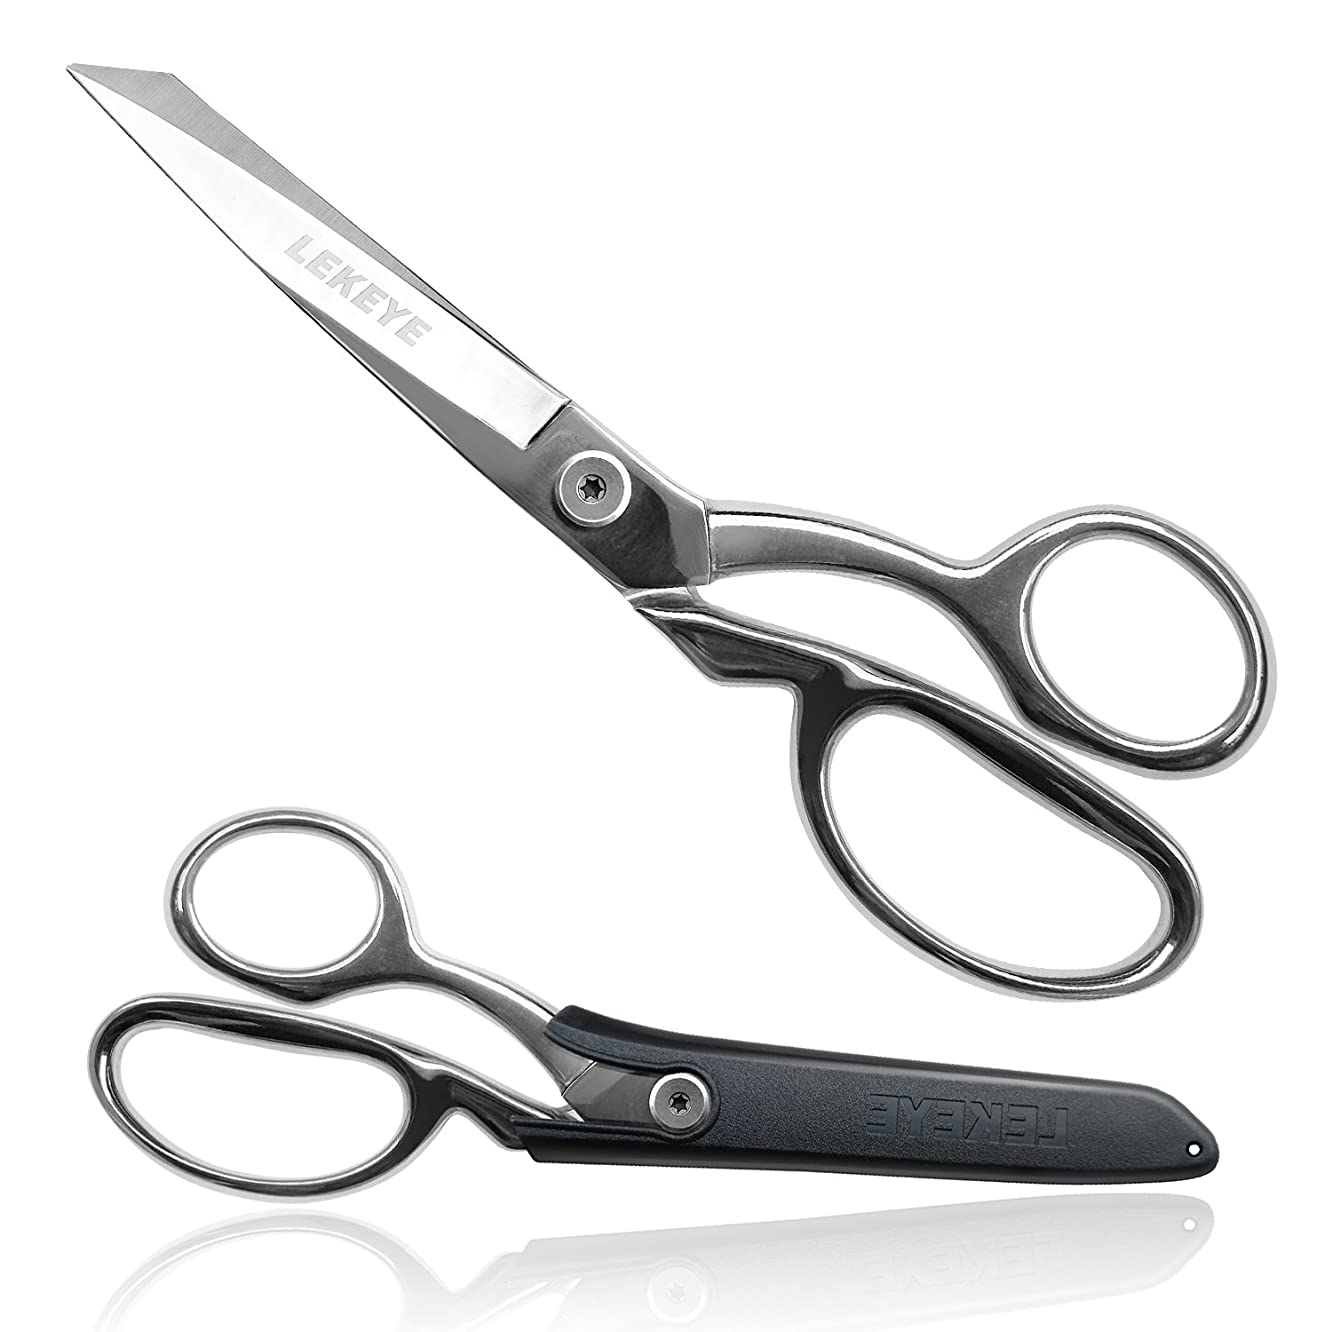 """LEKEYE Dressmaker's Scissors Heavy-Duty 8"""" Fabric Cutting Shears for Smooth Multiple Layer Cutting